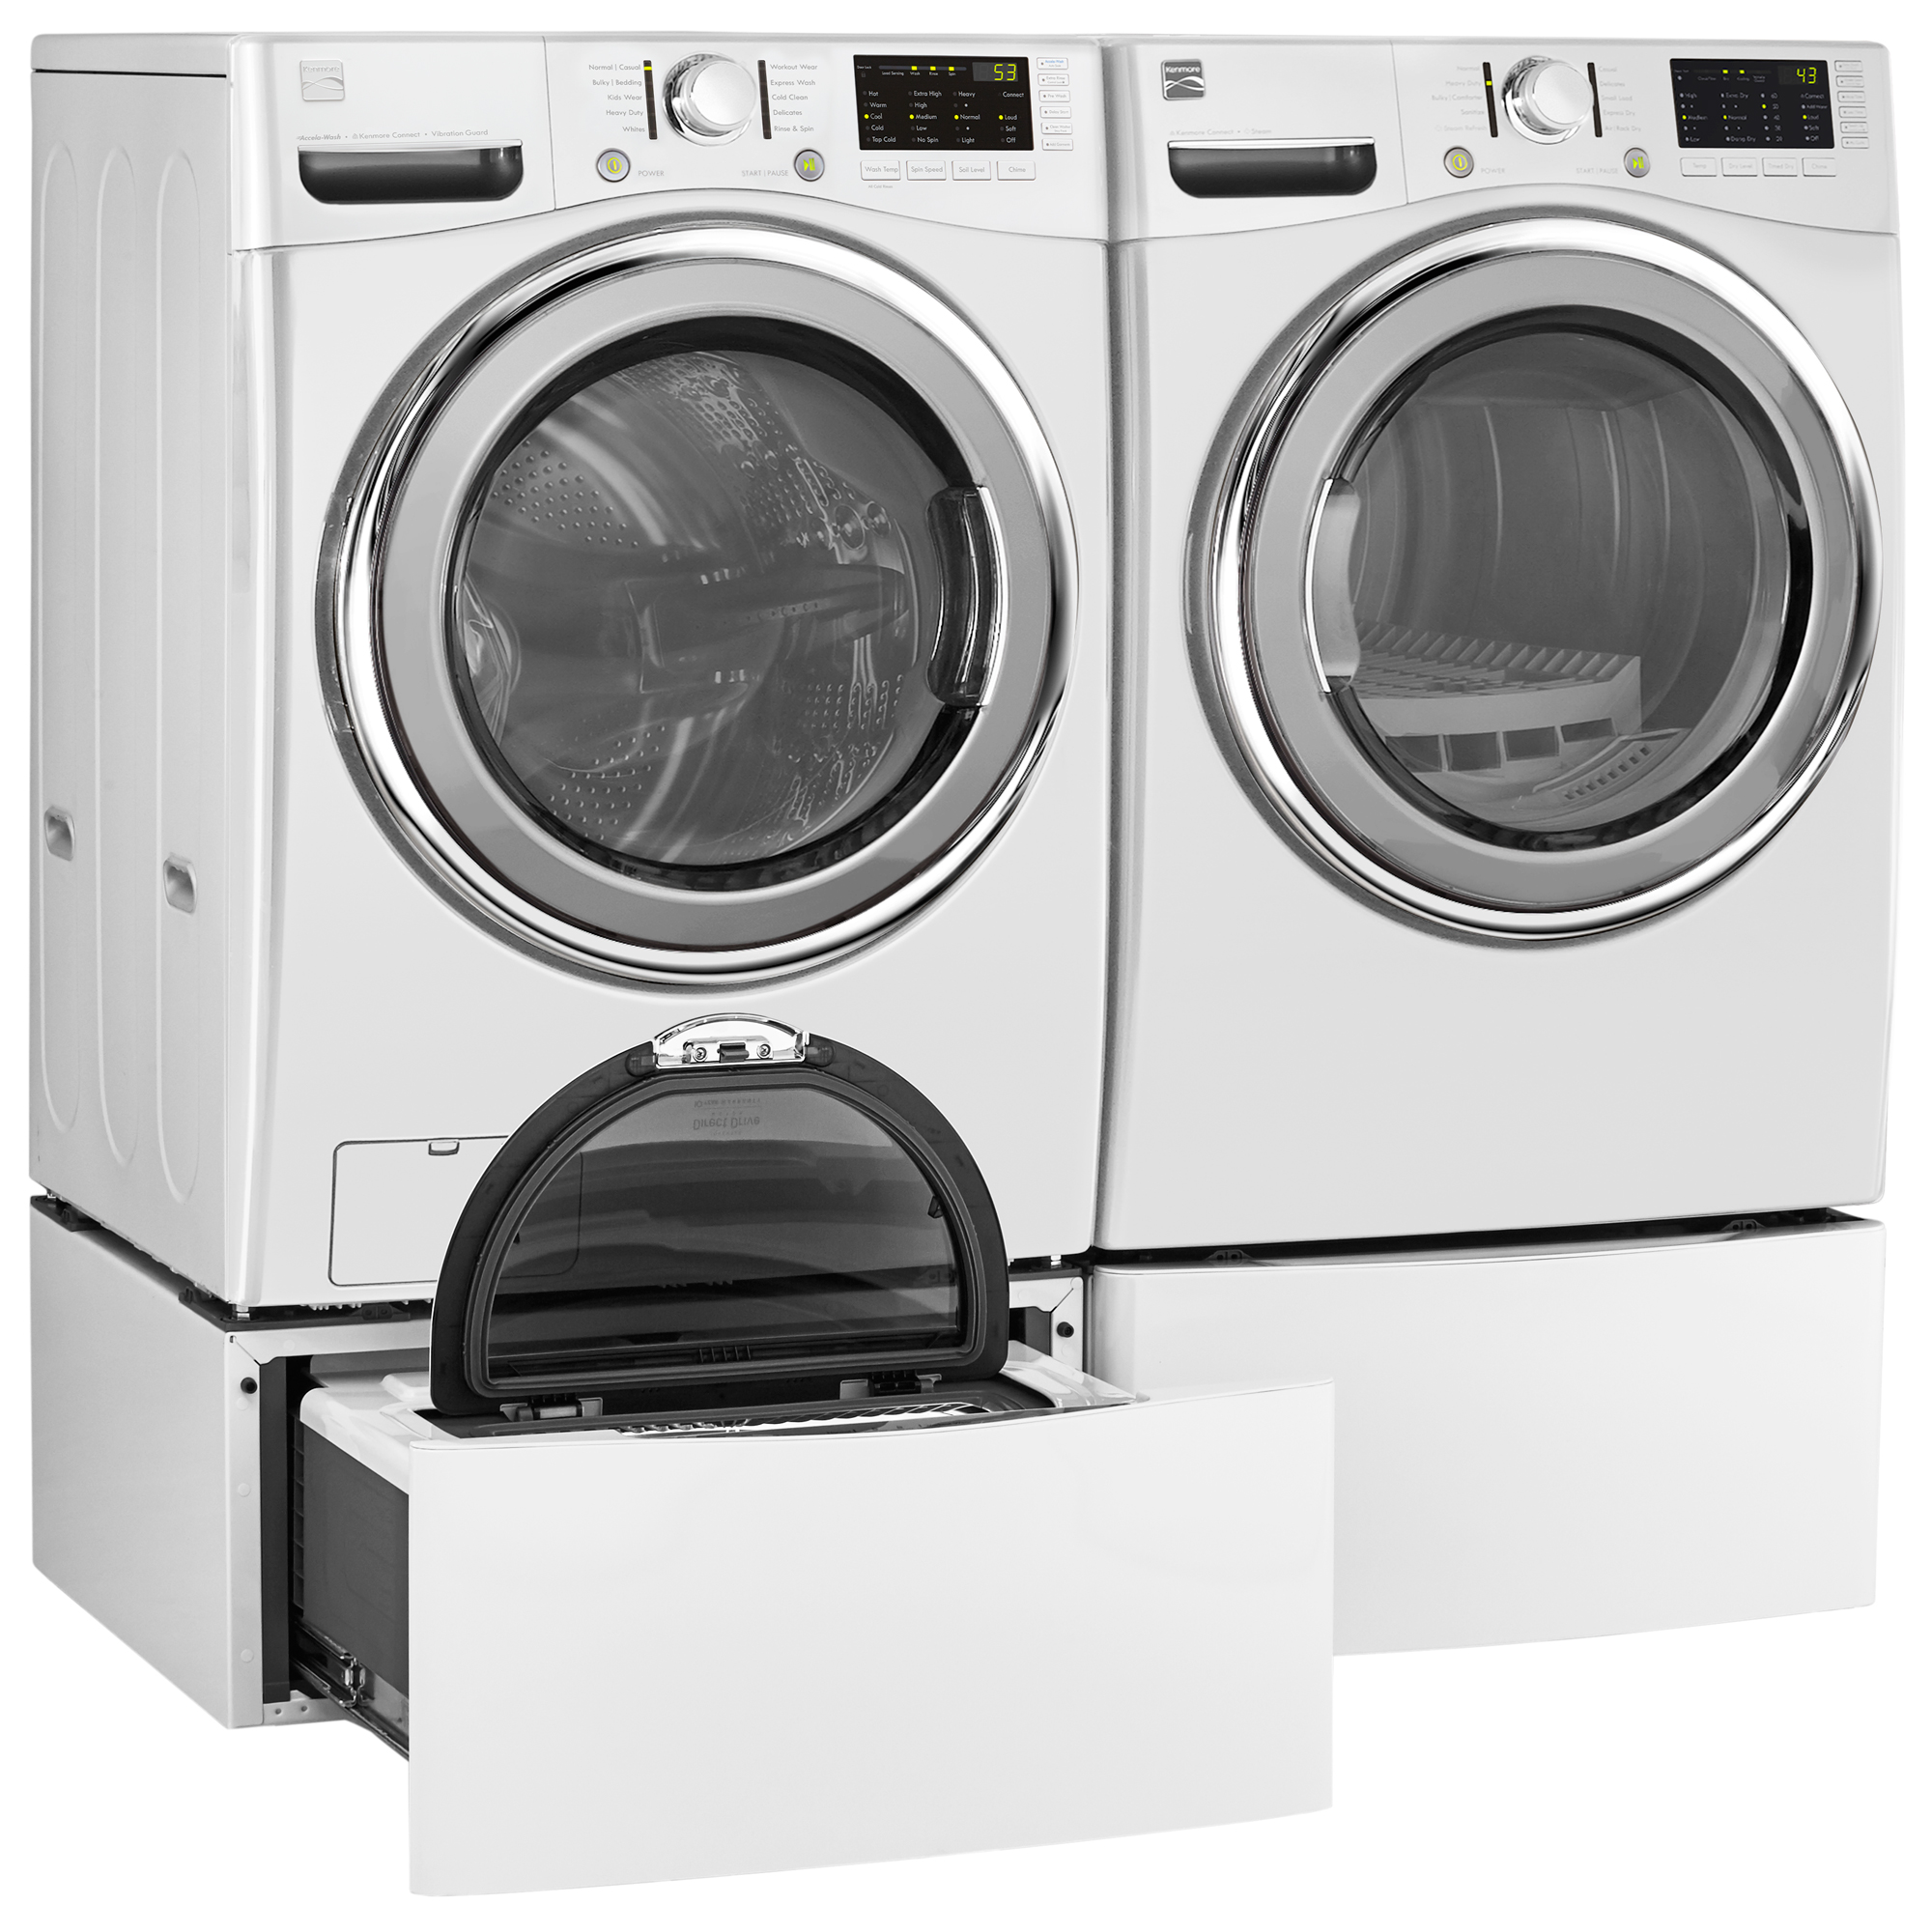 Kenmore 41392 4.5 cu. ft. Front-Load Washer w/Accela Wash® - White